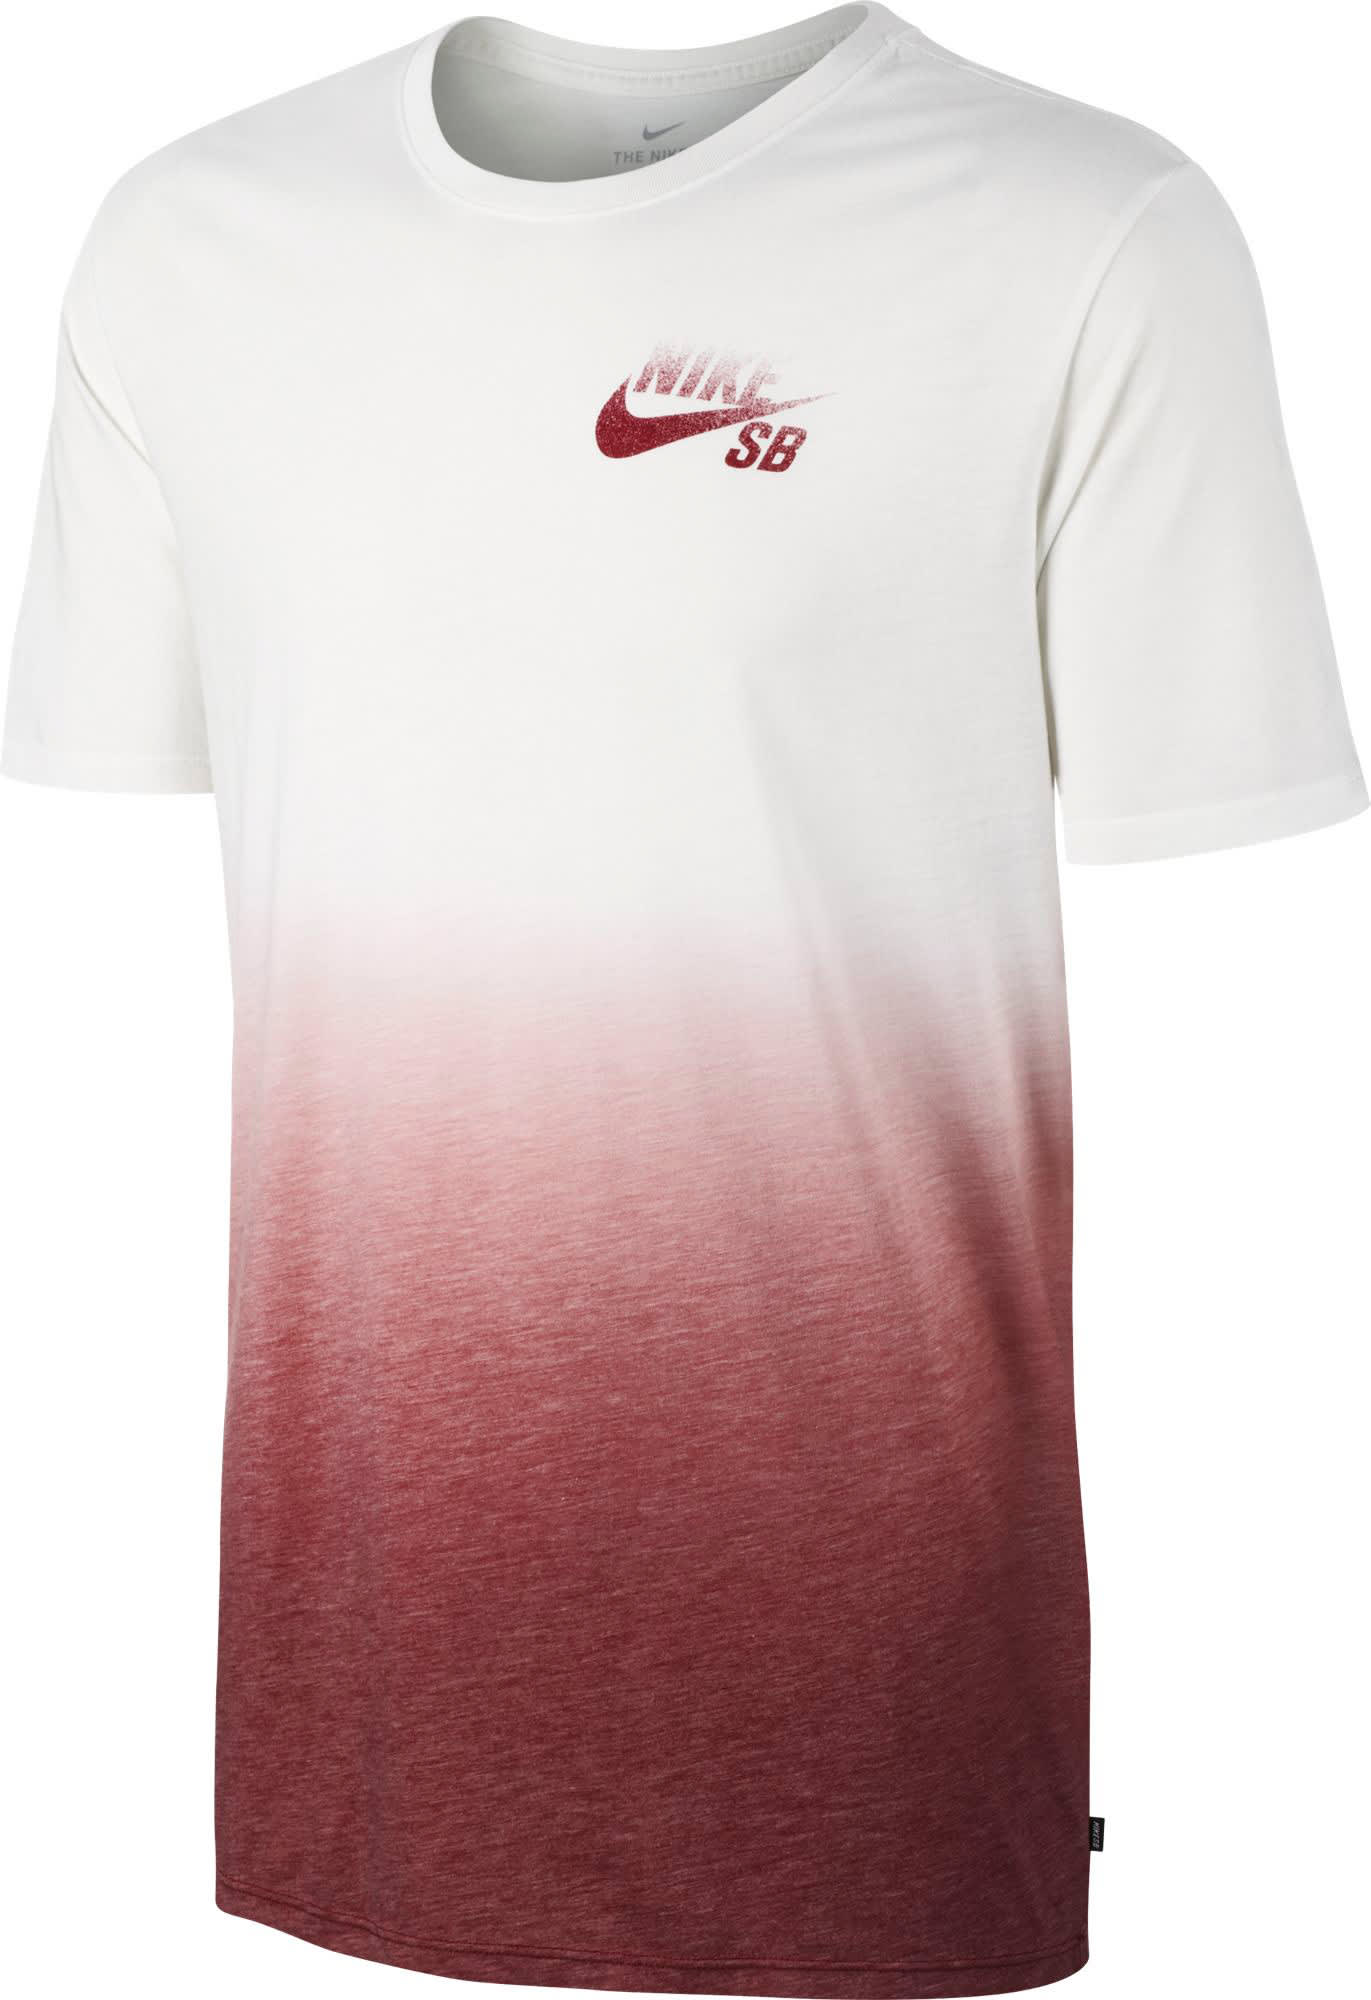 On sale nike sb dry dip dye t shirt up to 40 off for How to dye a shirt red